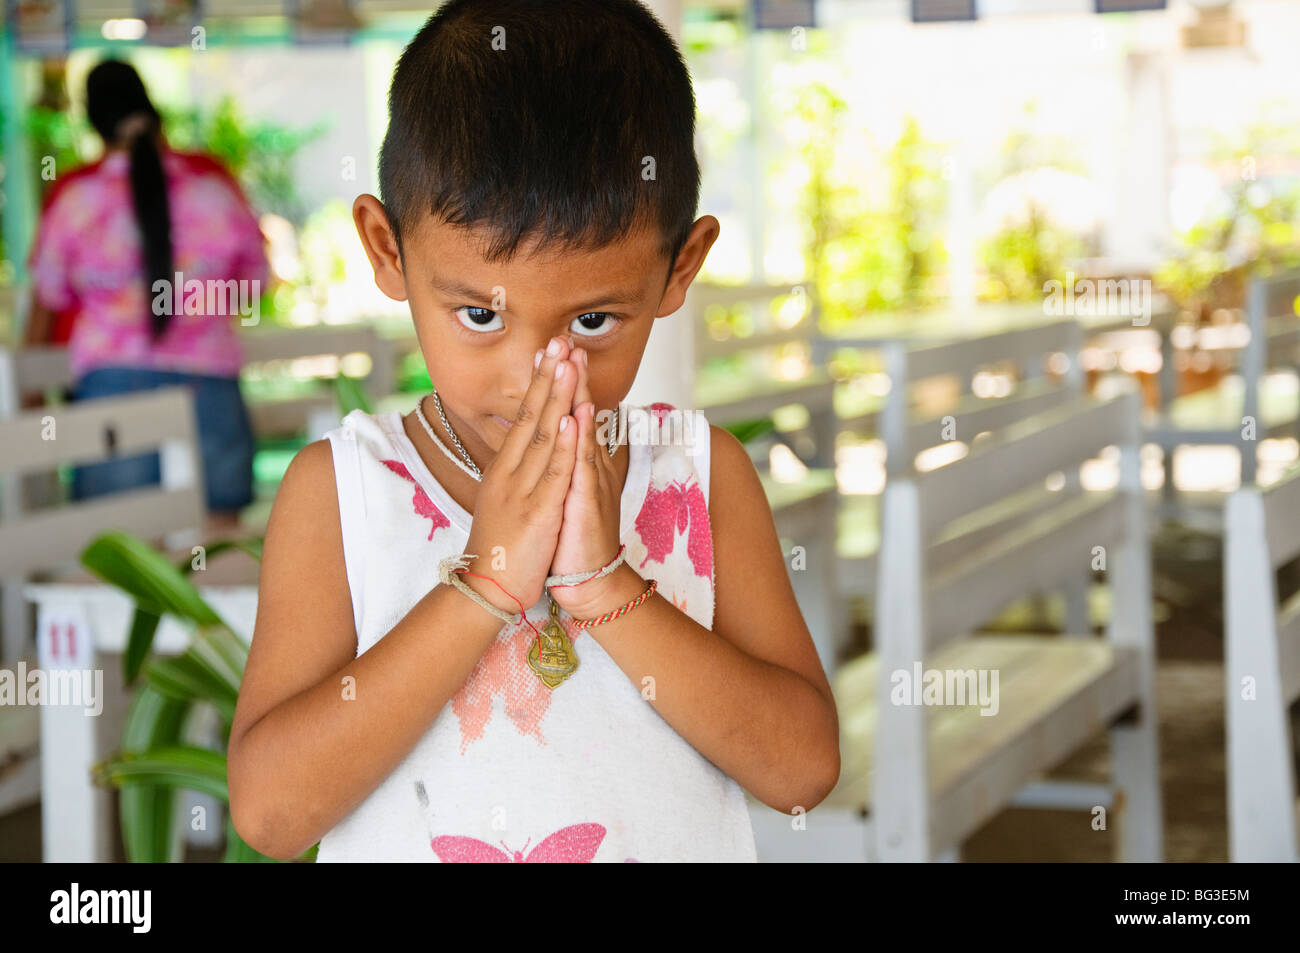 Wai greeting from a child, Ban Phe, Thailand - Stock Image